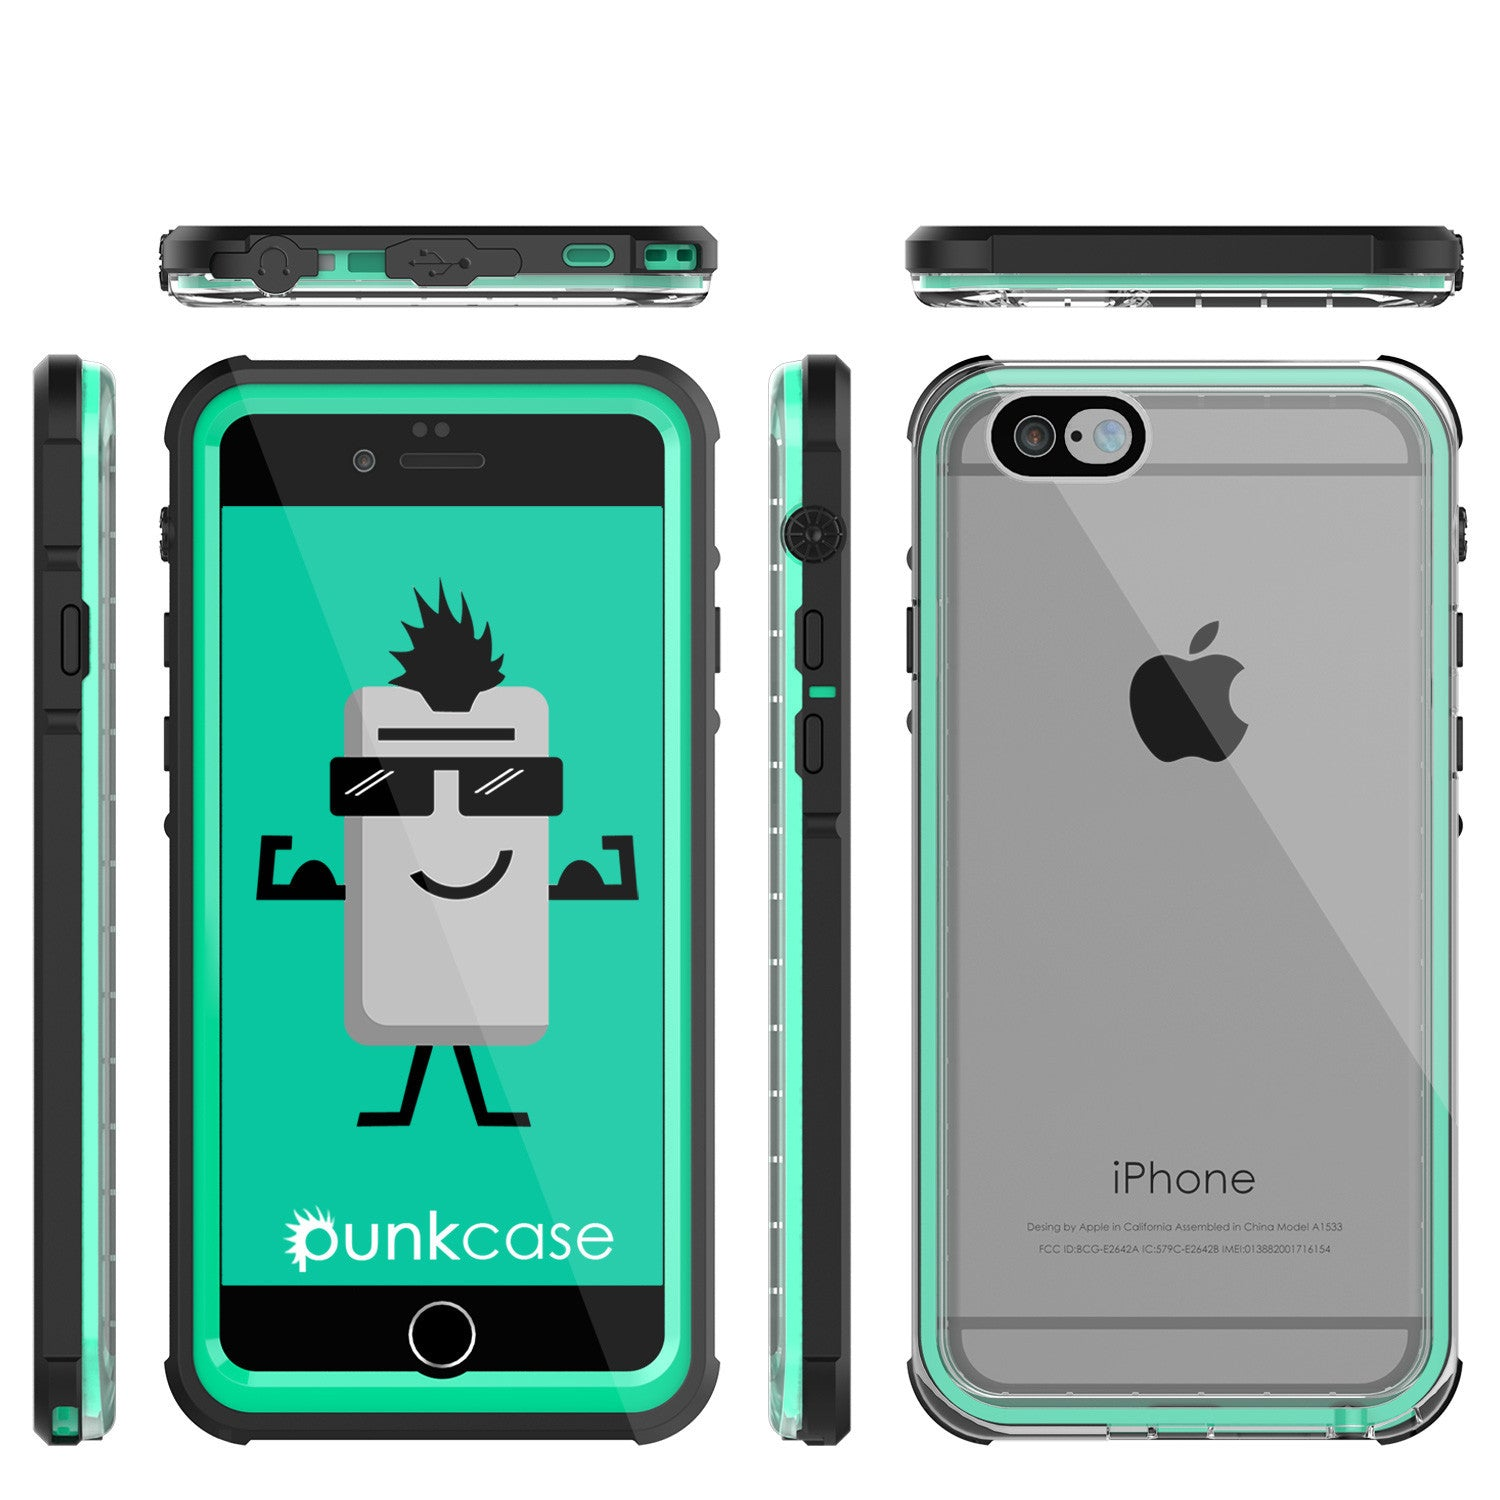 iPhone 6+/6S+ Plus Waterproof Case, PUNKcase CRYSTAL Teal W/ Attached Screen Protector | Warranty